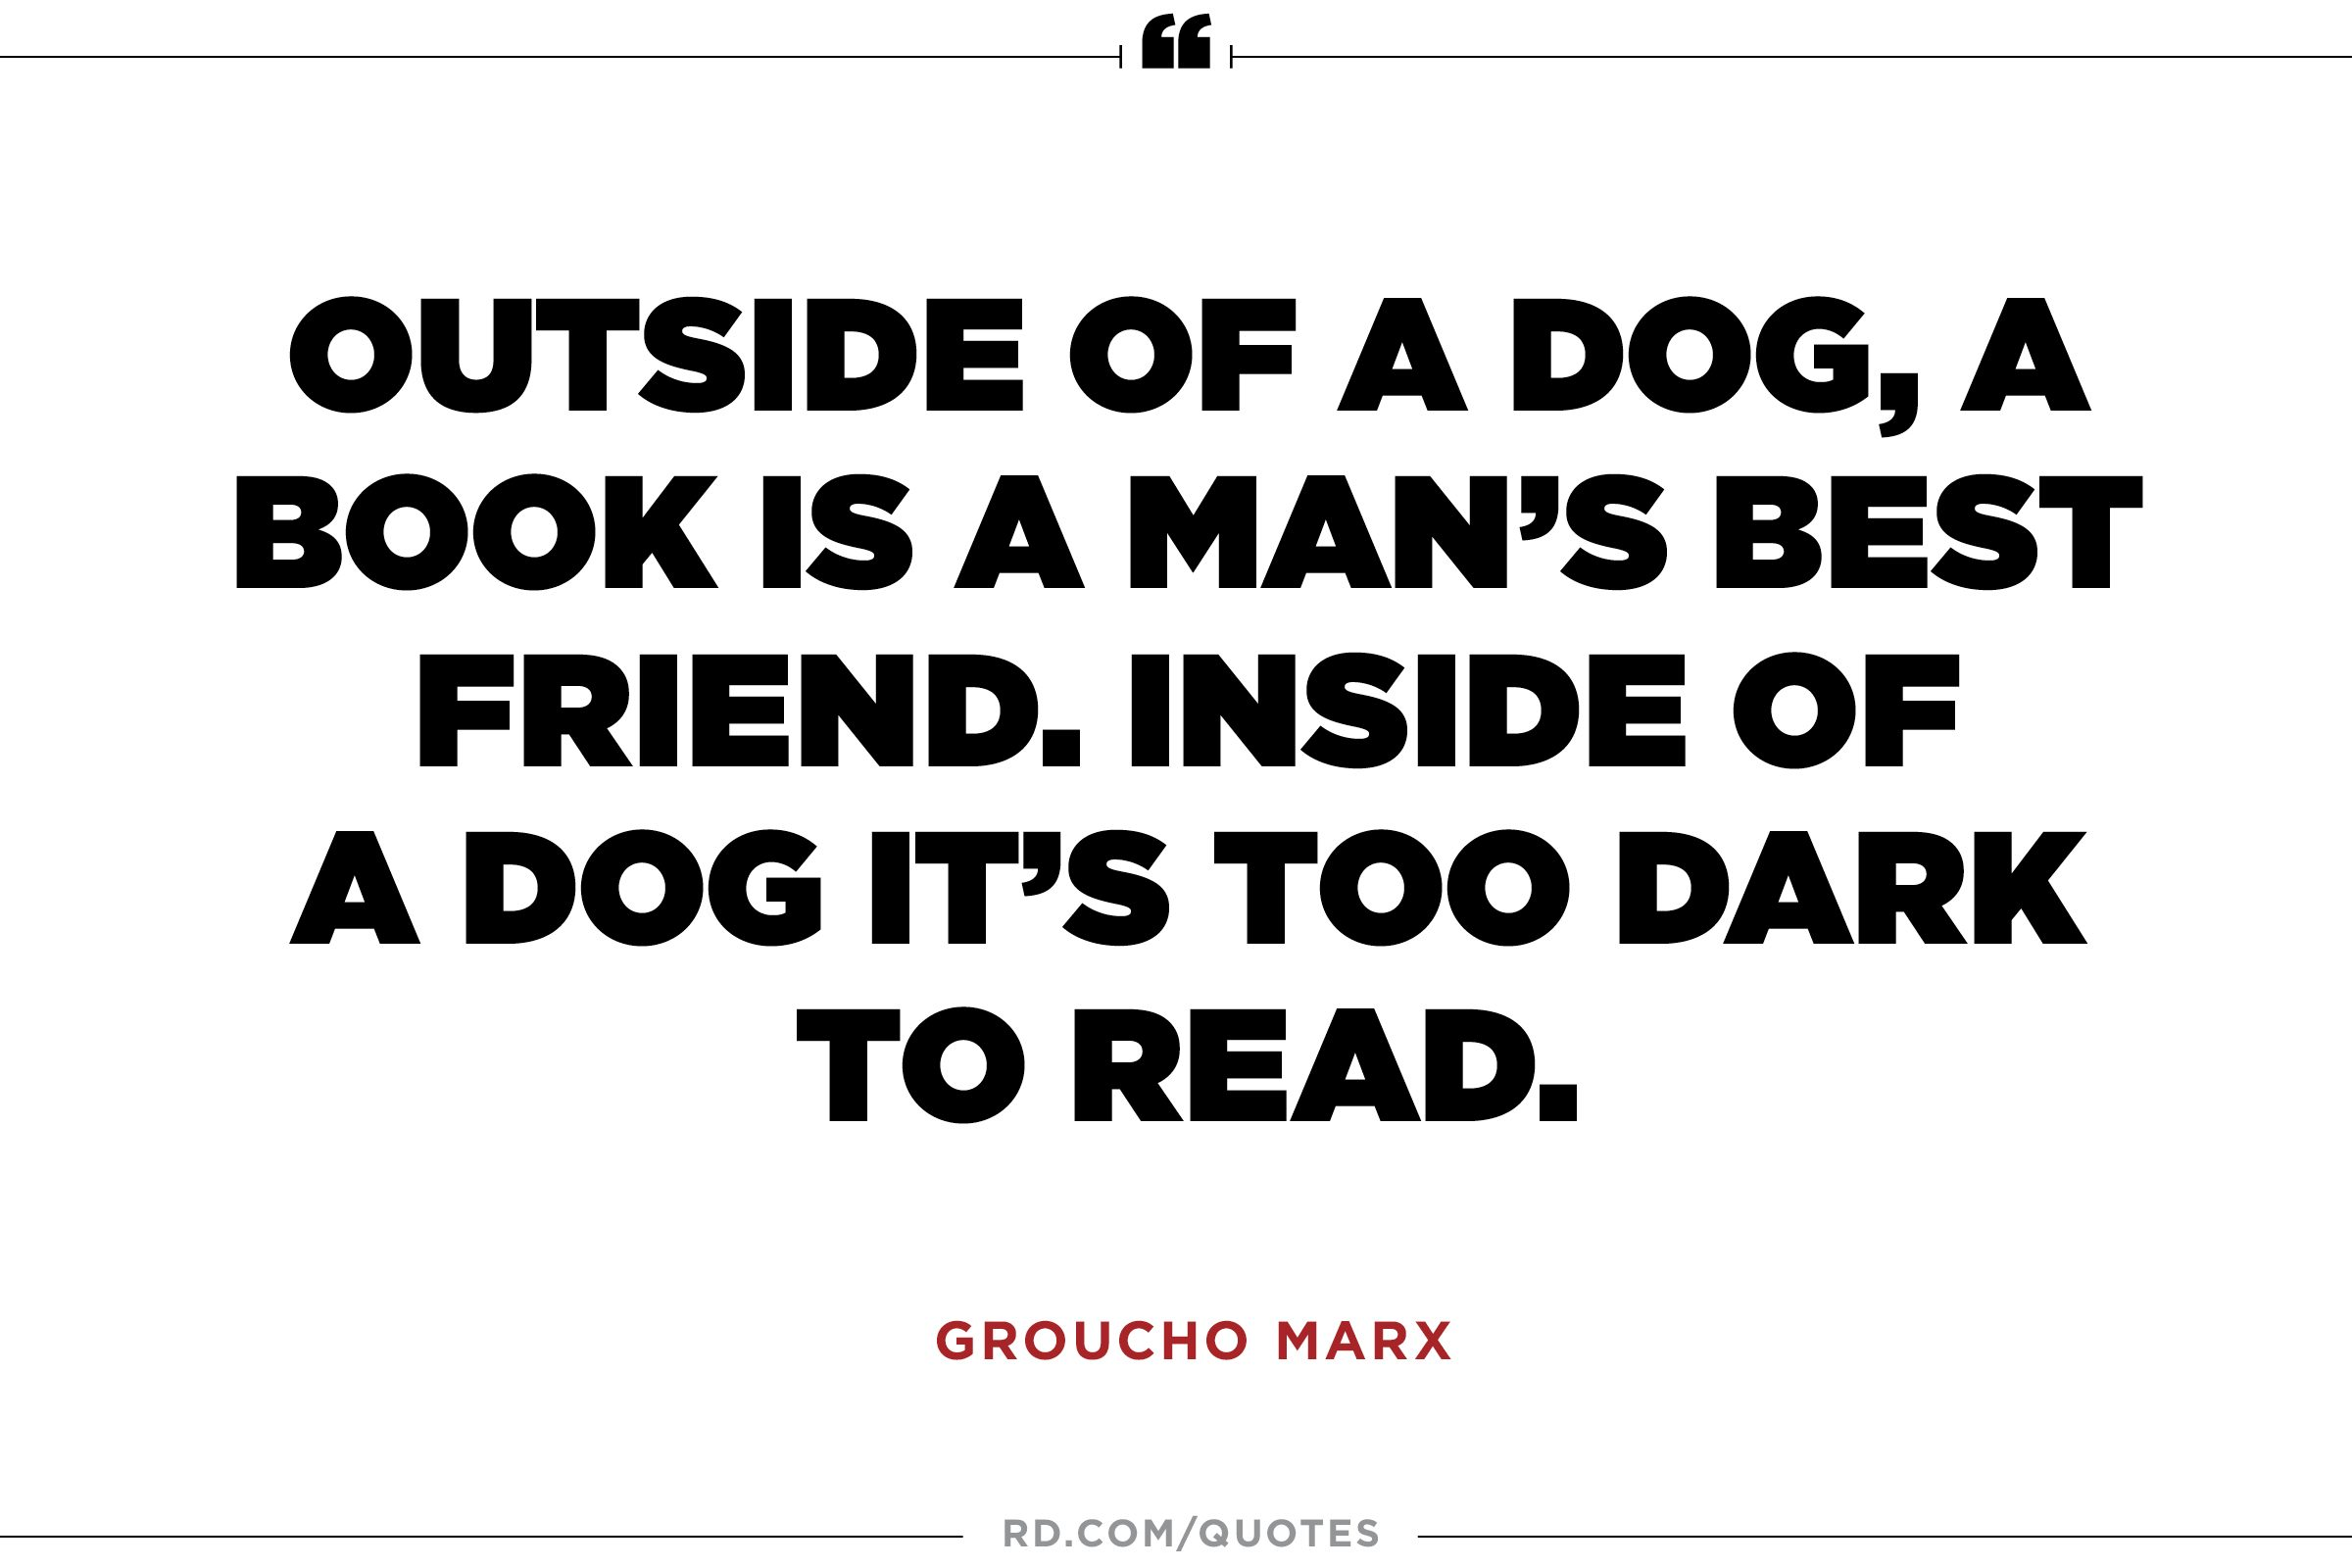 12 Wise Groucho Marx Quotes